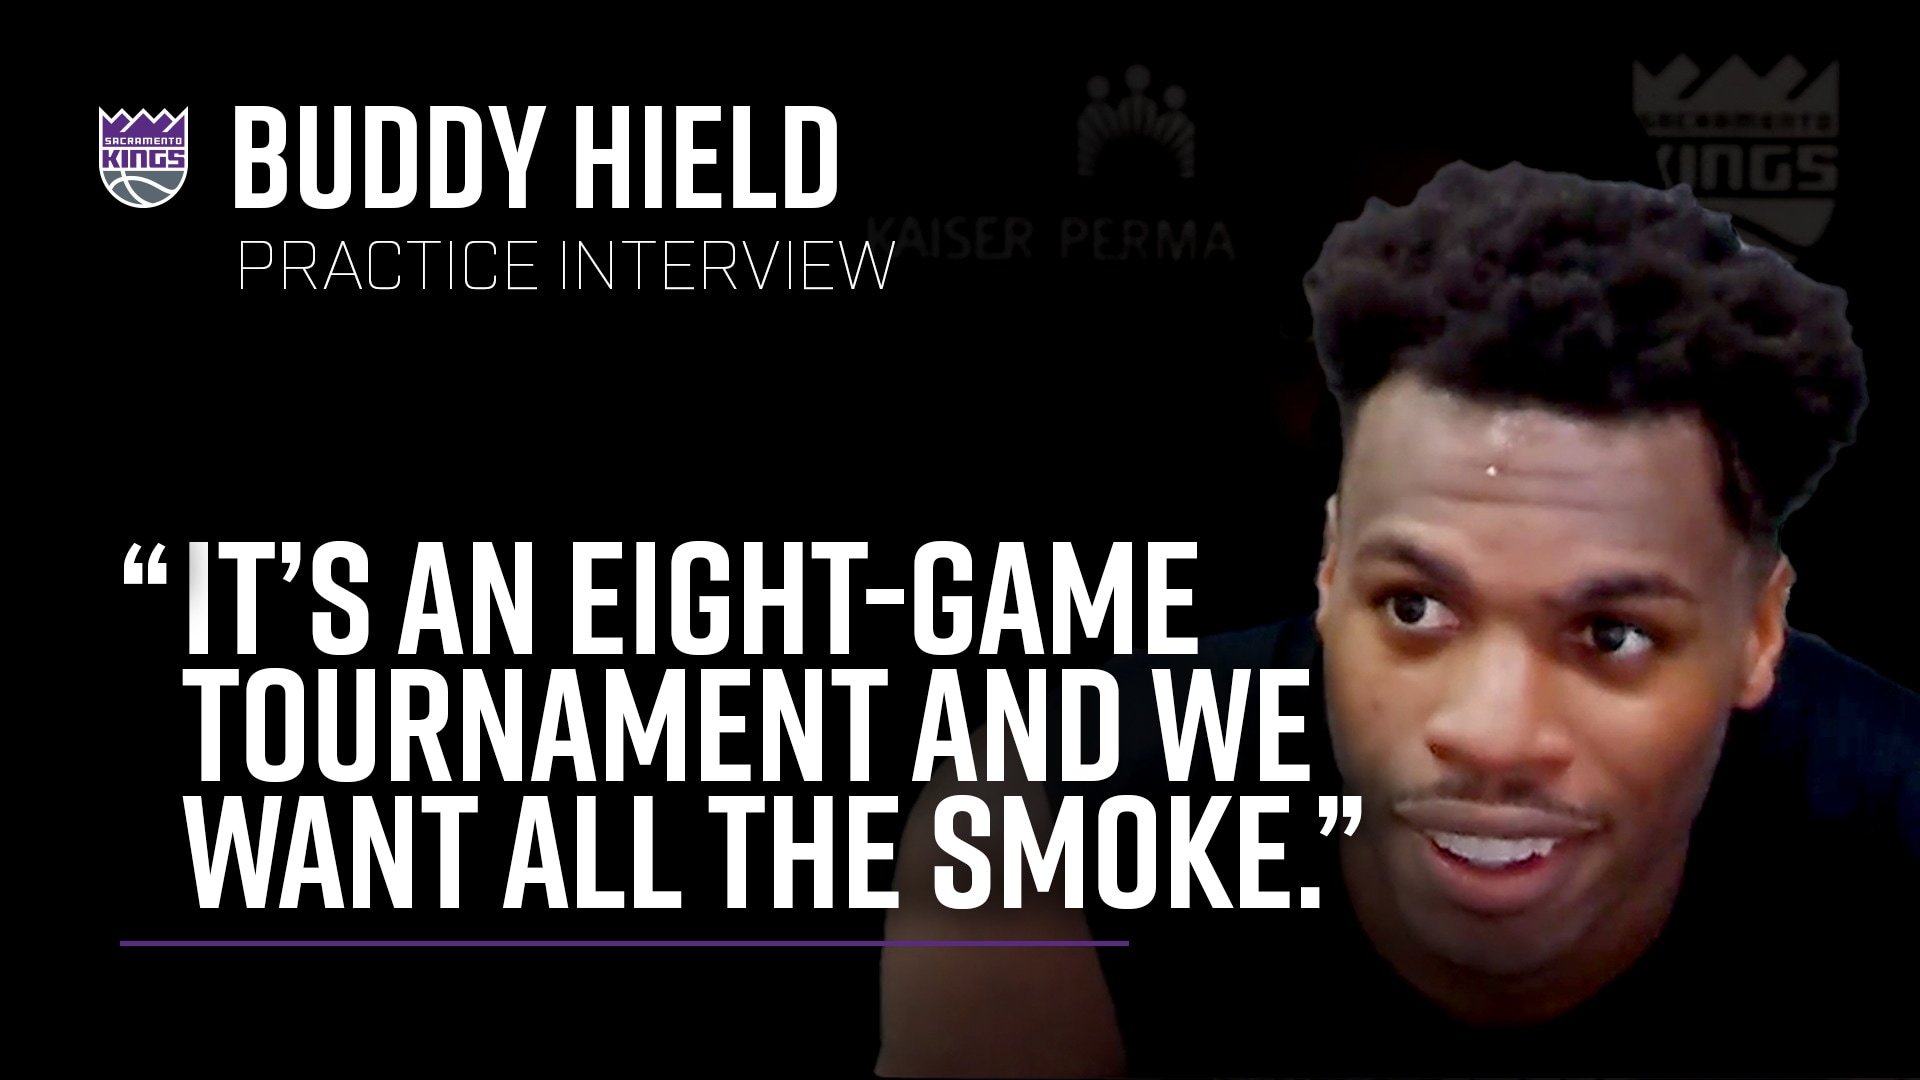 Buddy Wants All the Smoke   Practice Interview 7.29.20